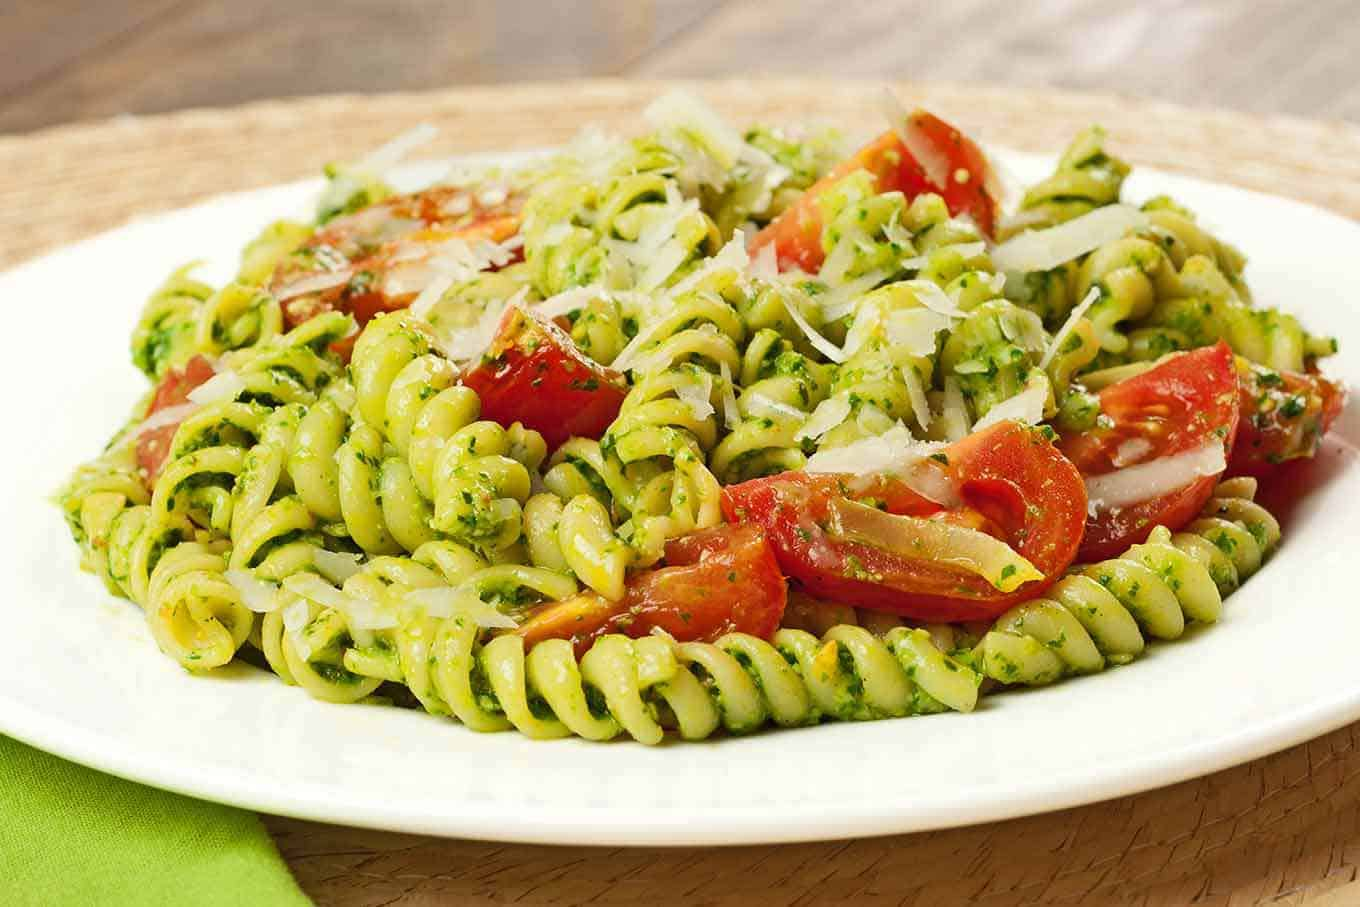 Rotini with Spinach-Basil Pesto and Tomatoes